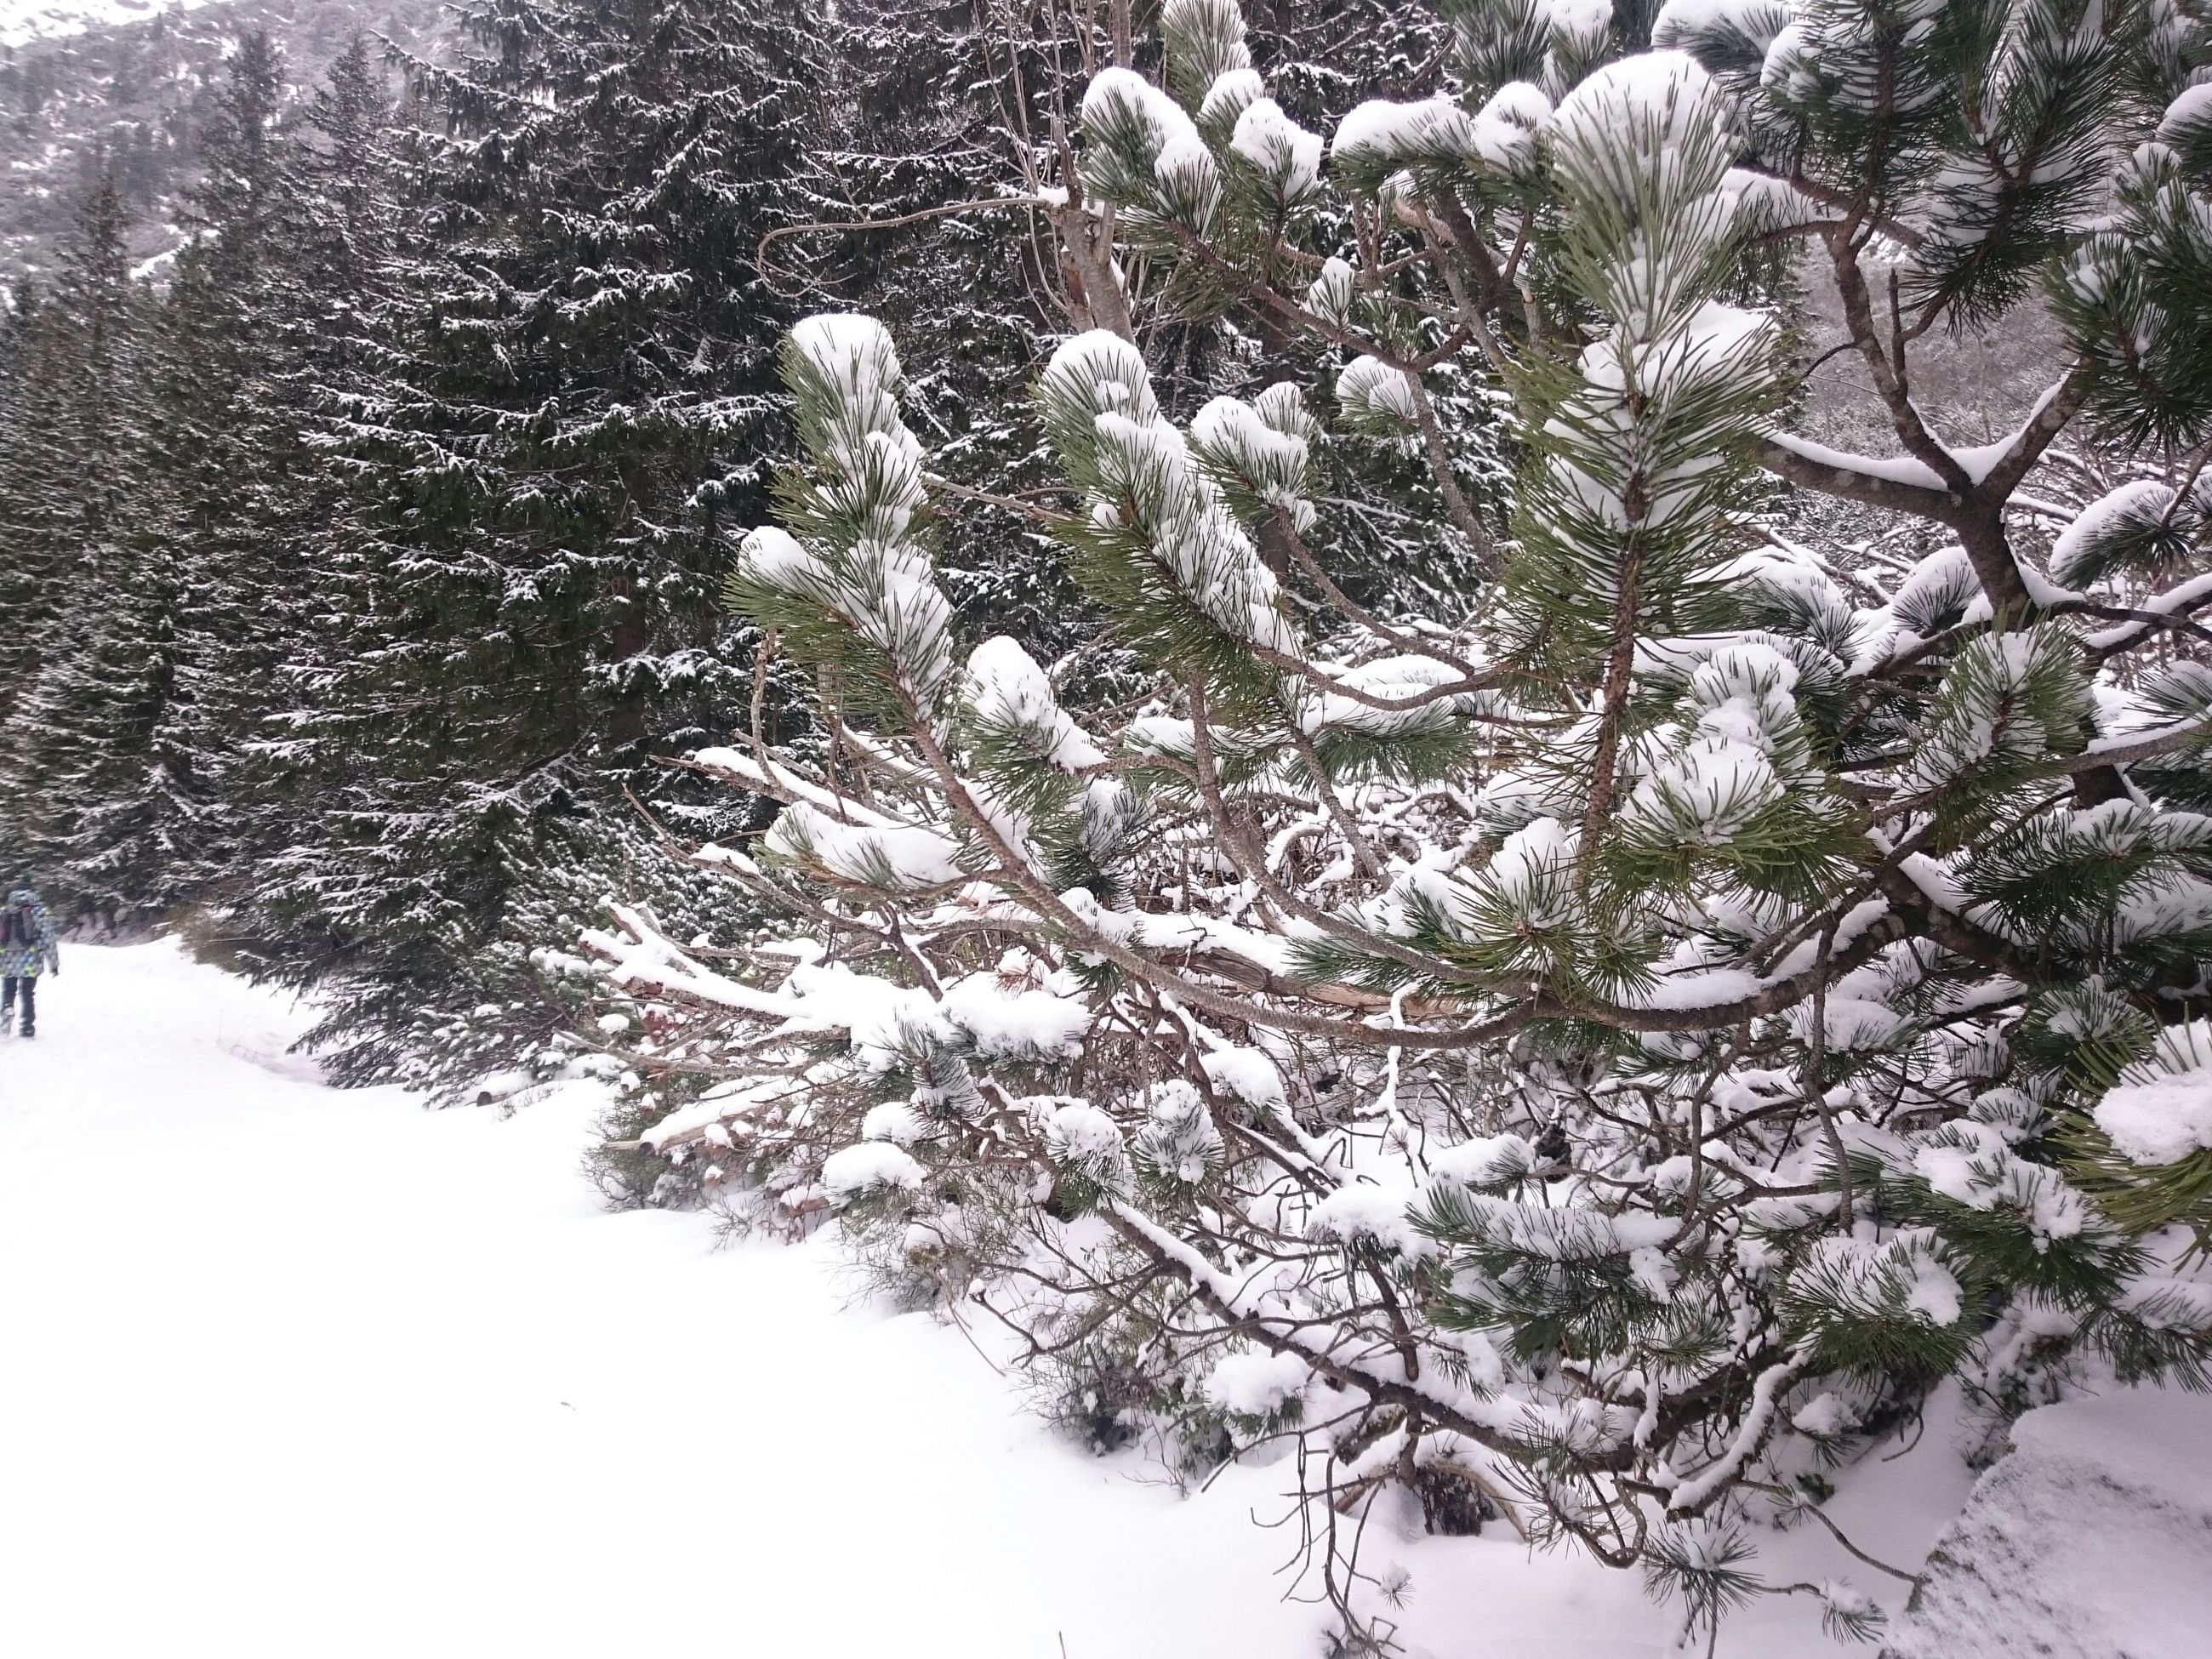 tree, growth, branch, nature, tranquility, beauty in nature, white color, winter, day, snow, tranquil scene, outdoors, no people, low angle view, cold temperature, season, plant, sunlight, tree trunk, scenics